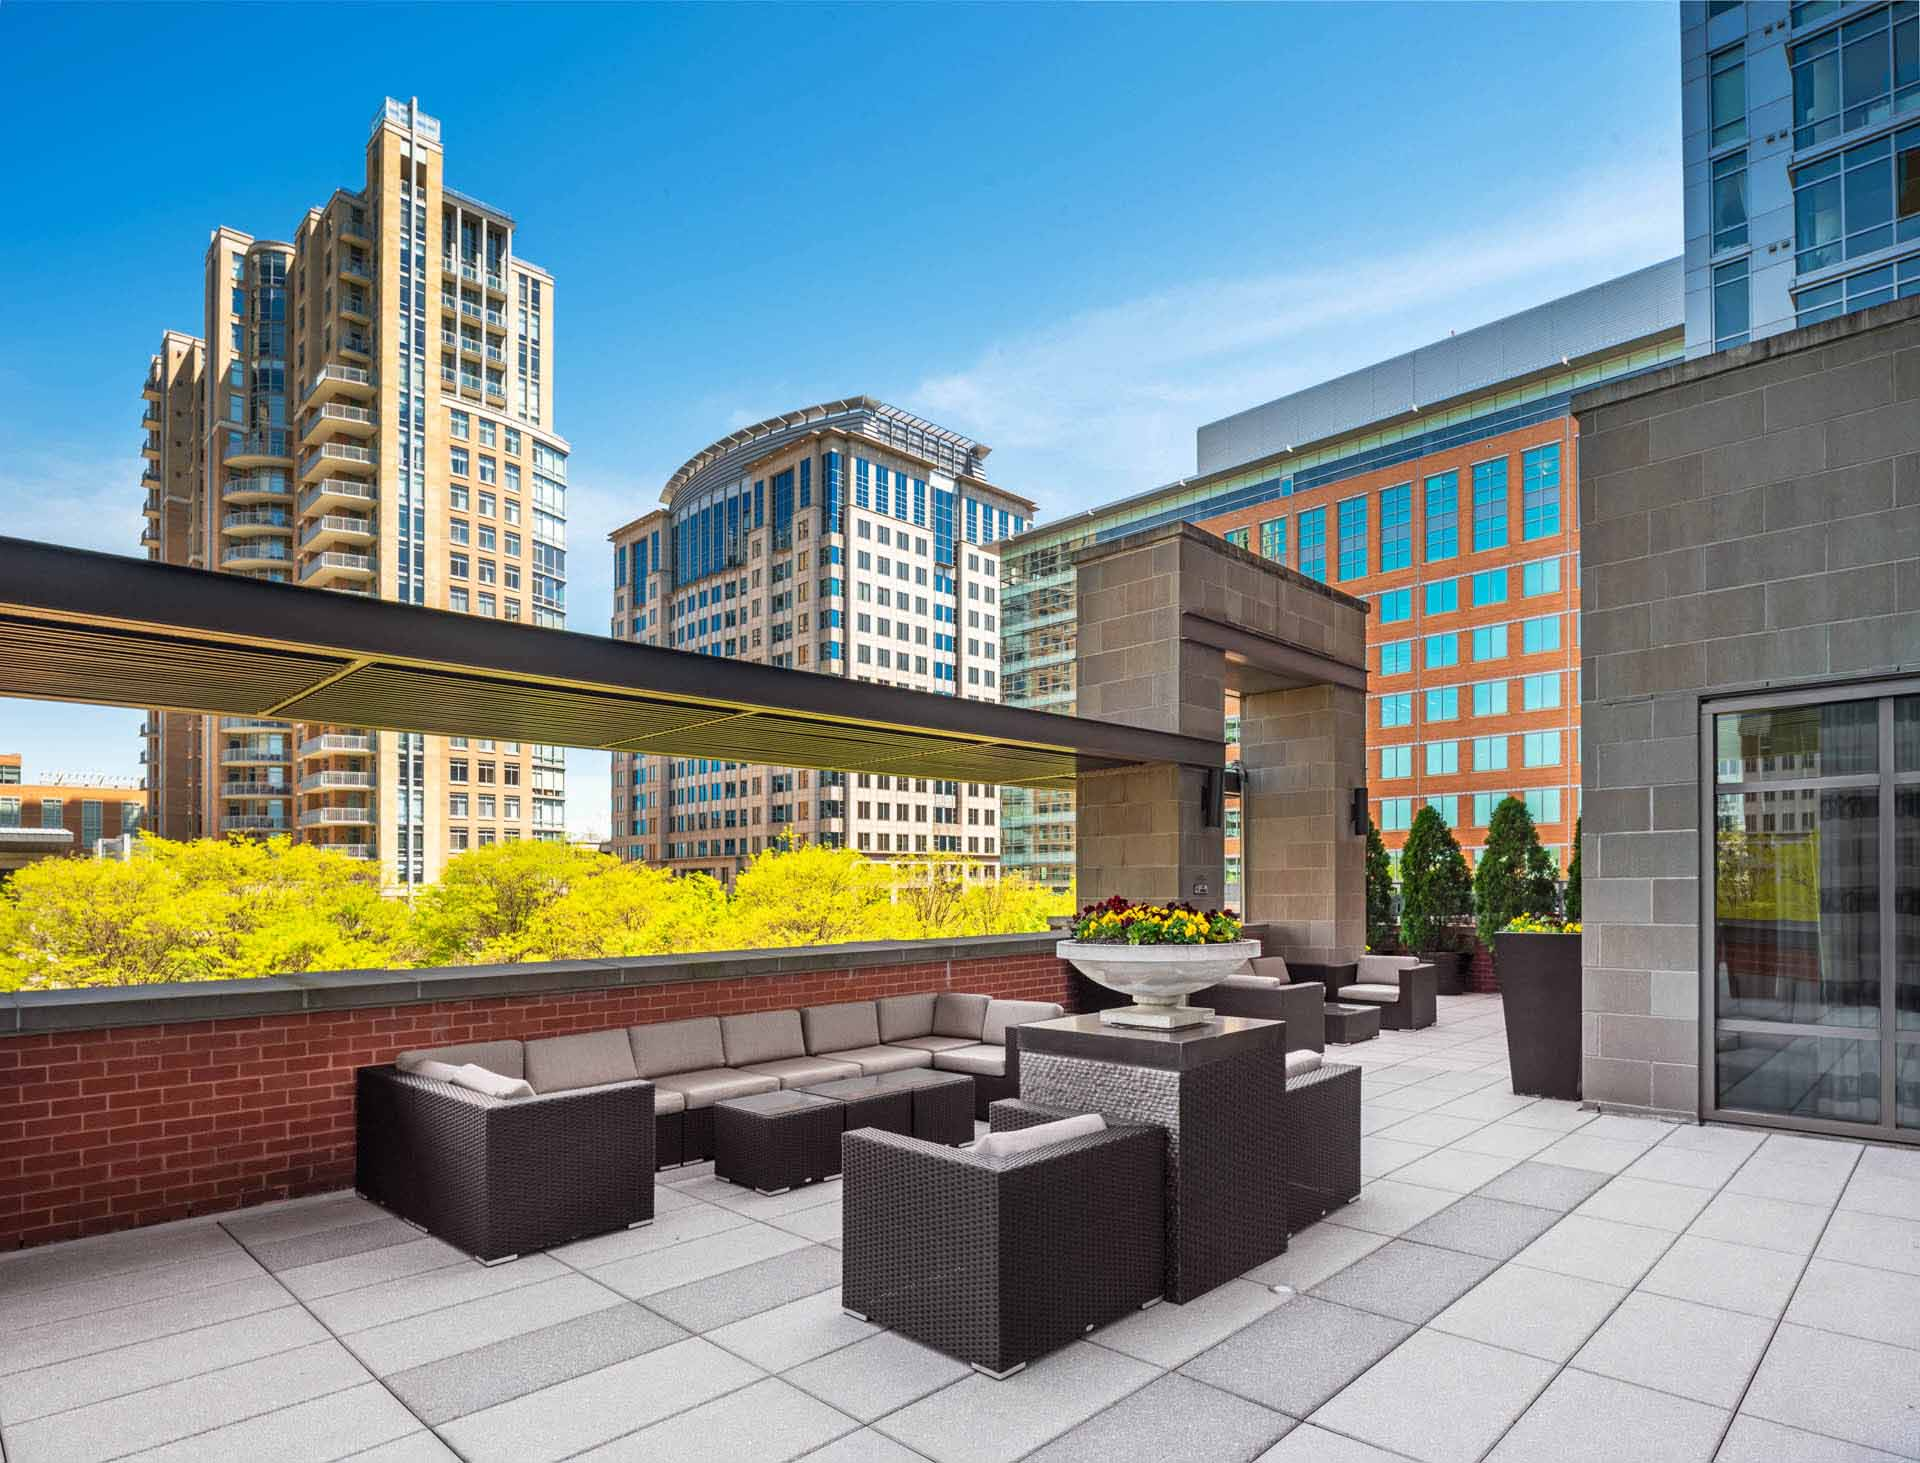 Terrace with outdoor seating and view of bright green treetops and tall buildings beyond